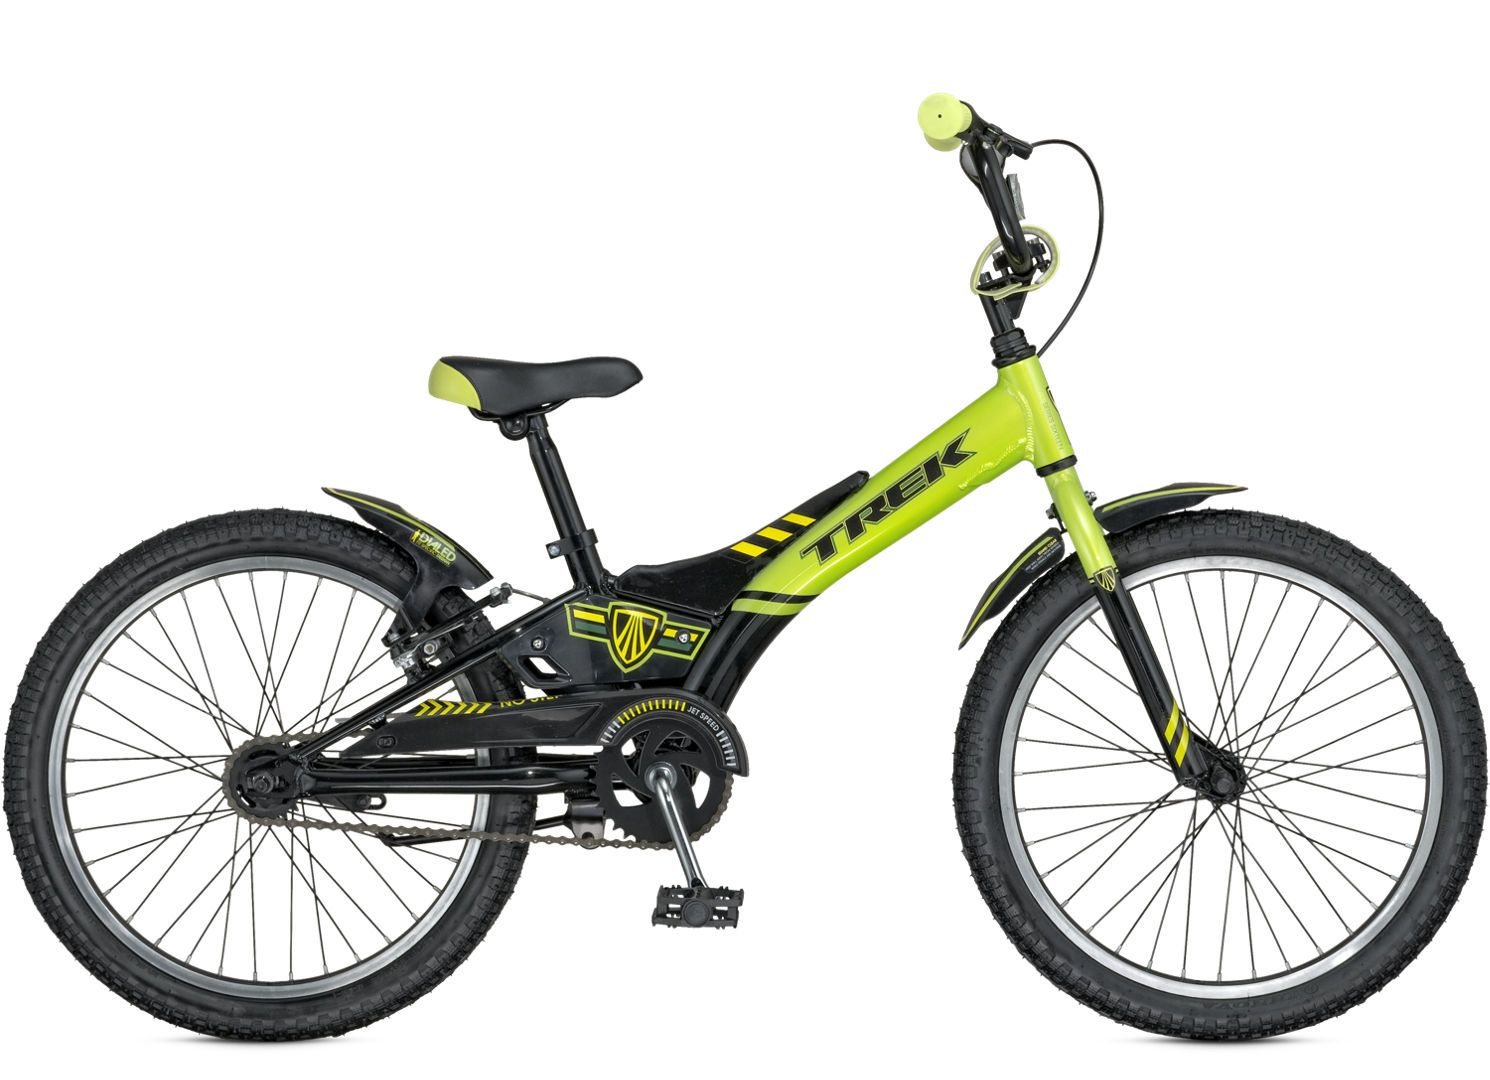 Trek Kids Bikes Sturdy Stable Robust With Heaps Of Growing Room Worth Every Penny For This Quality When Kids Are Gett Trek Bicycle Trek Bikes Boy Bike